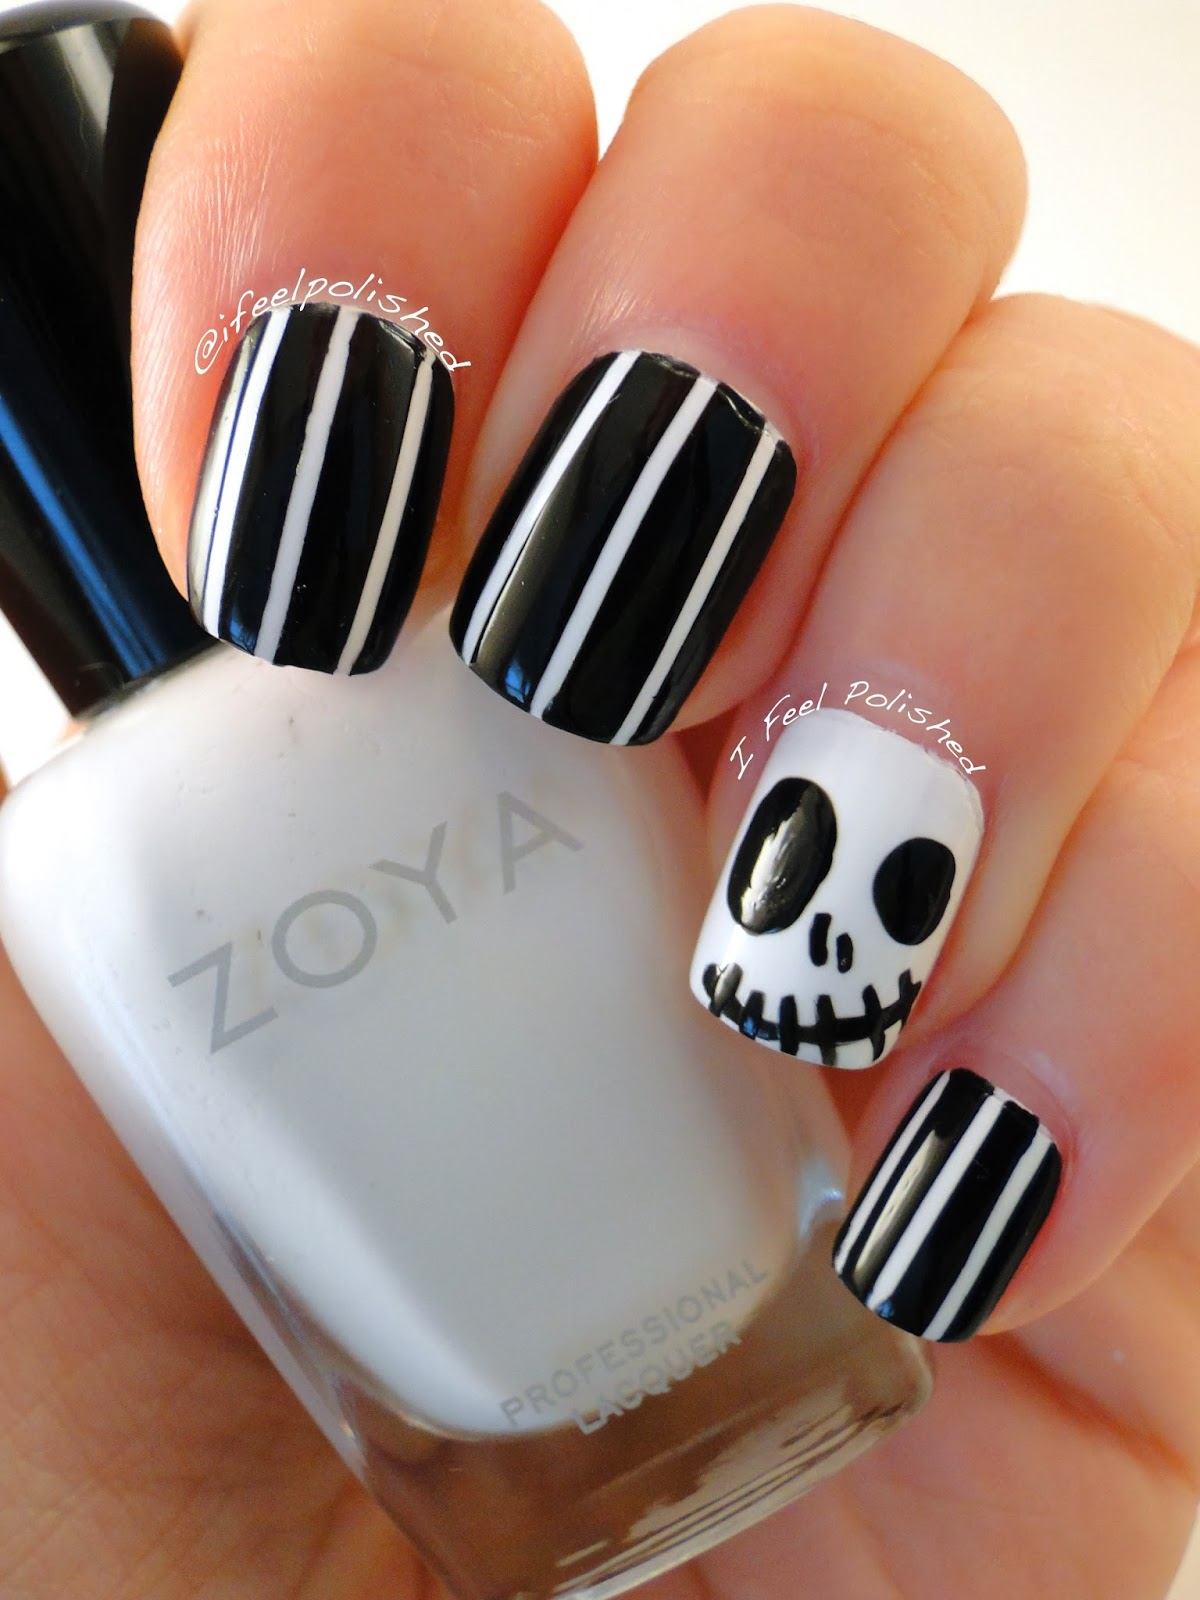 I Feel Polished!: Happy Halloween! Jack Skellington Nails